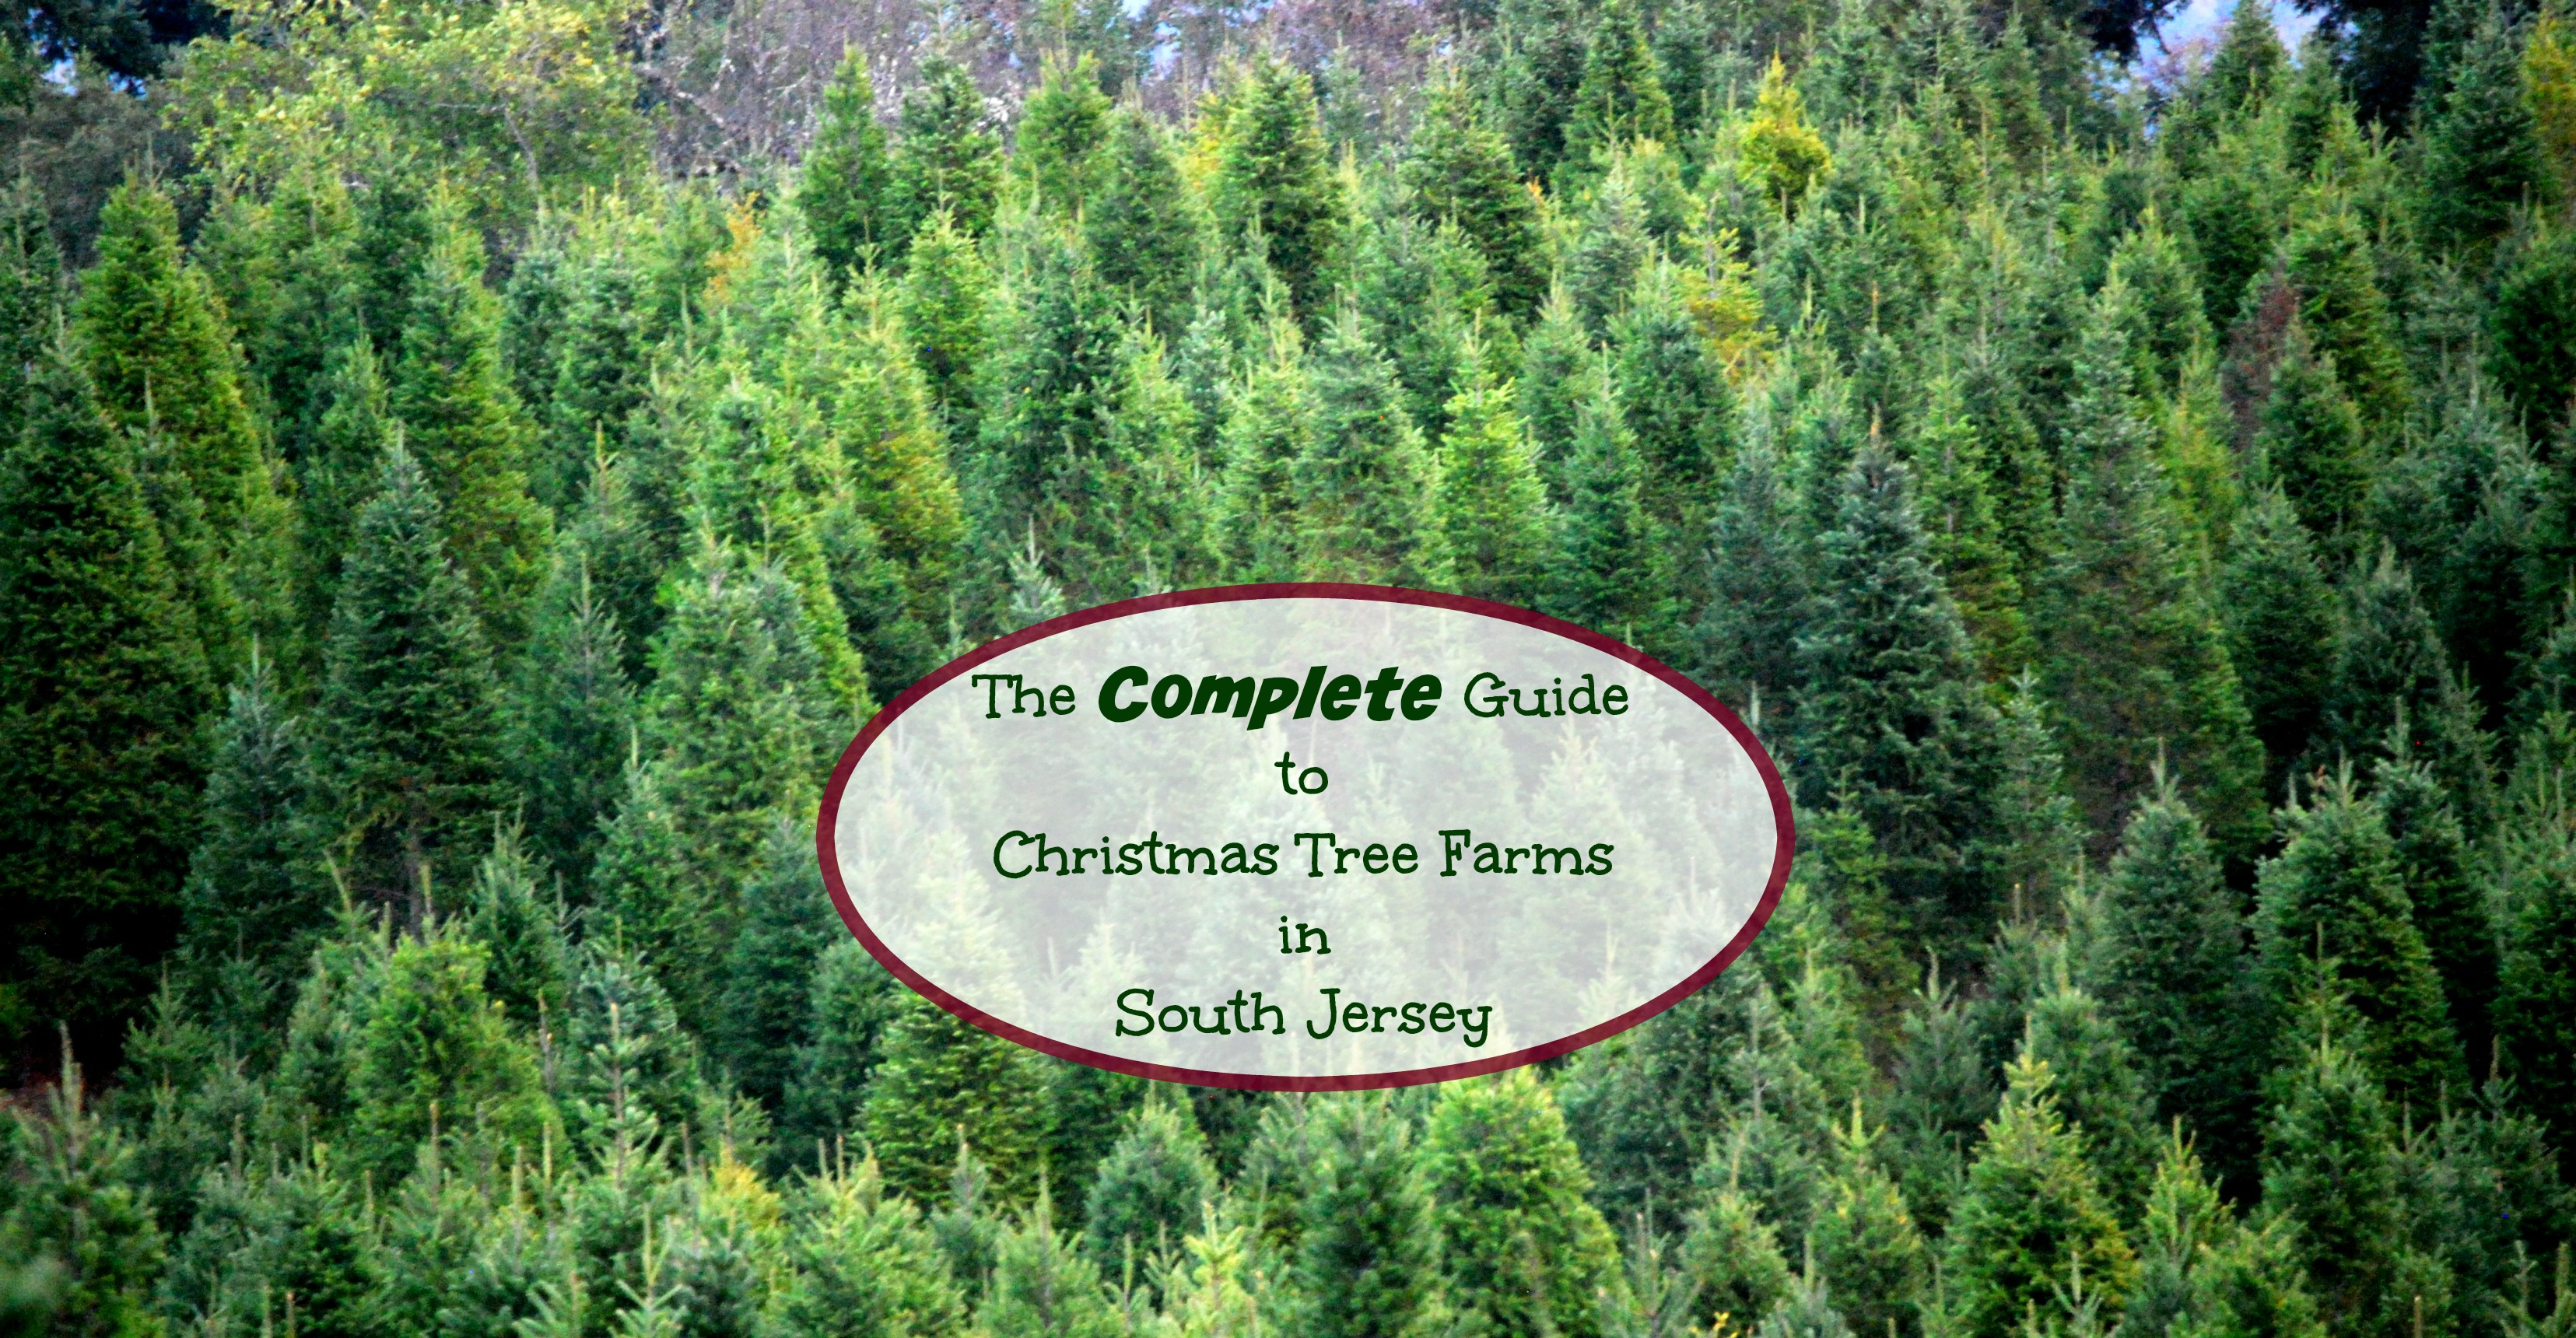 South Jersey Christmas Tree Farm